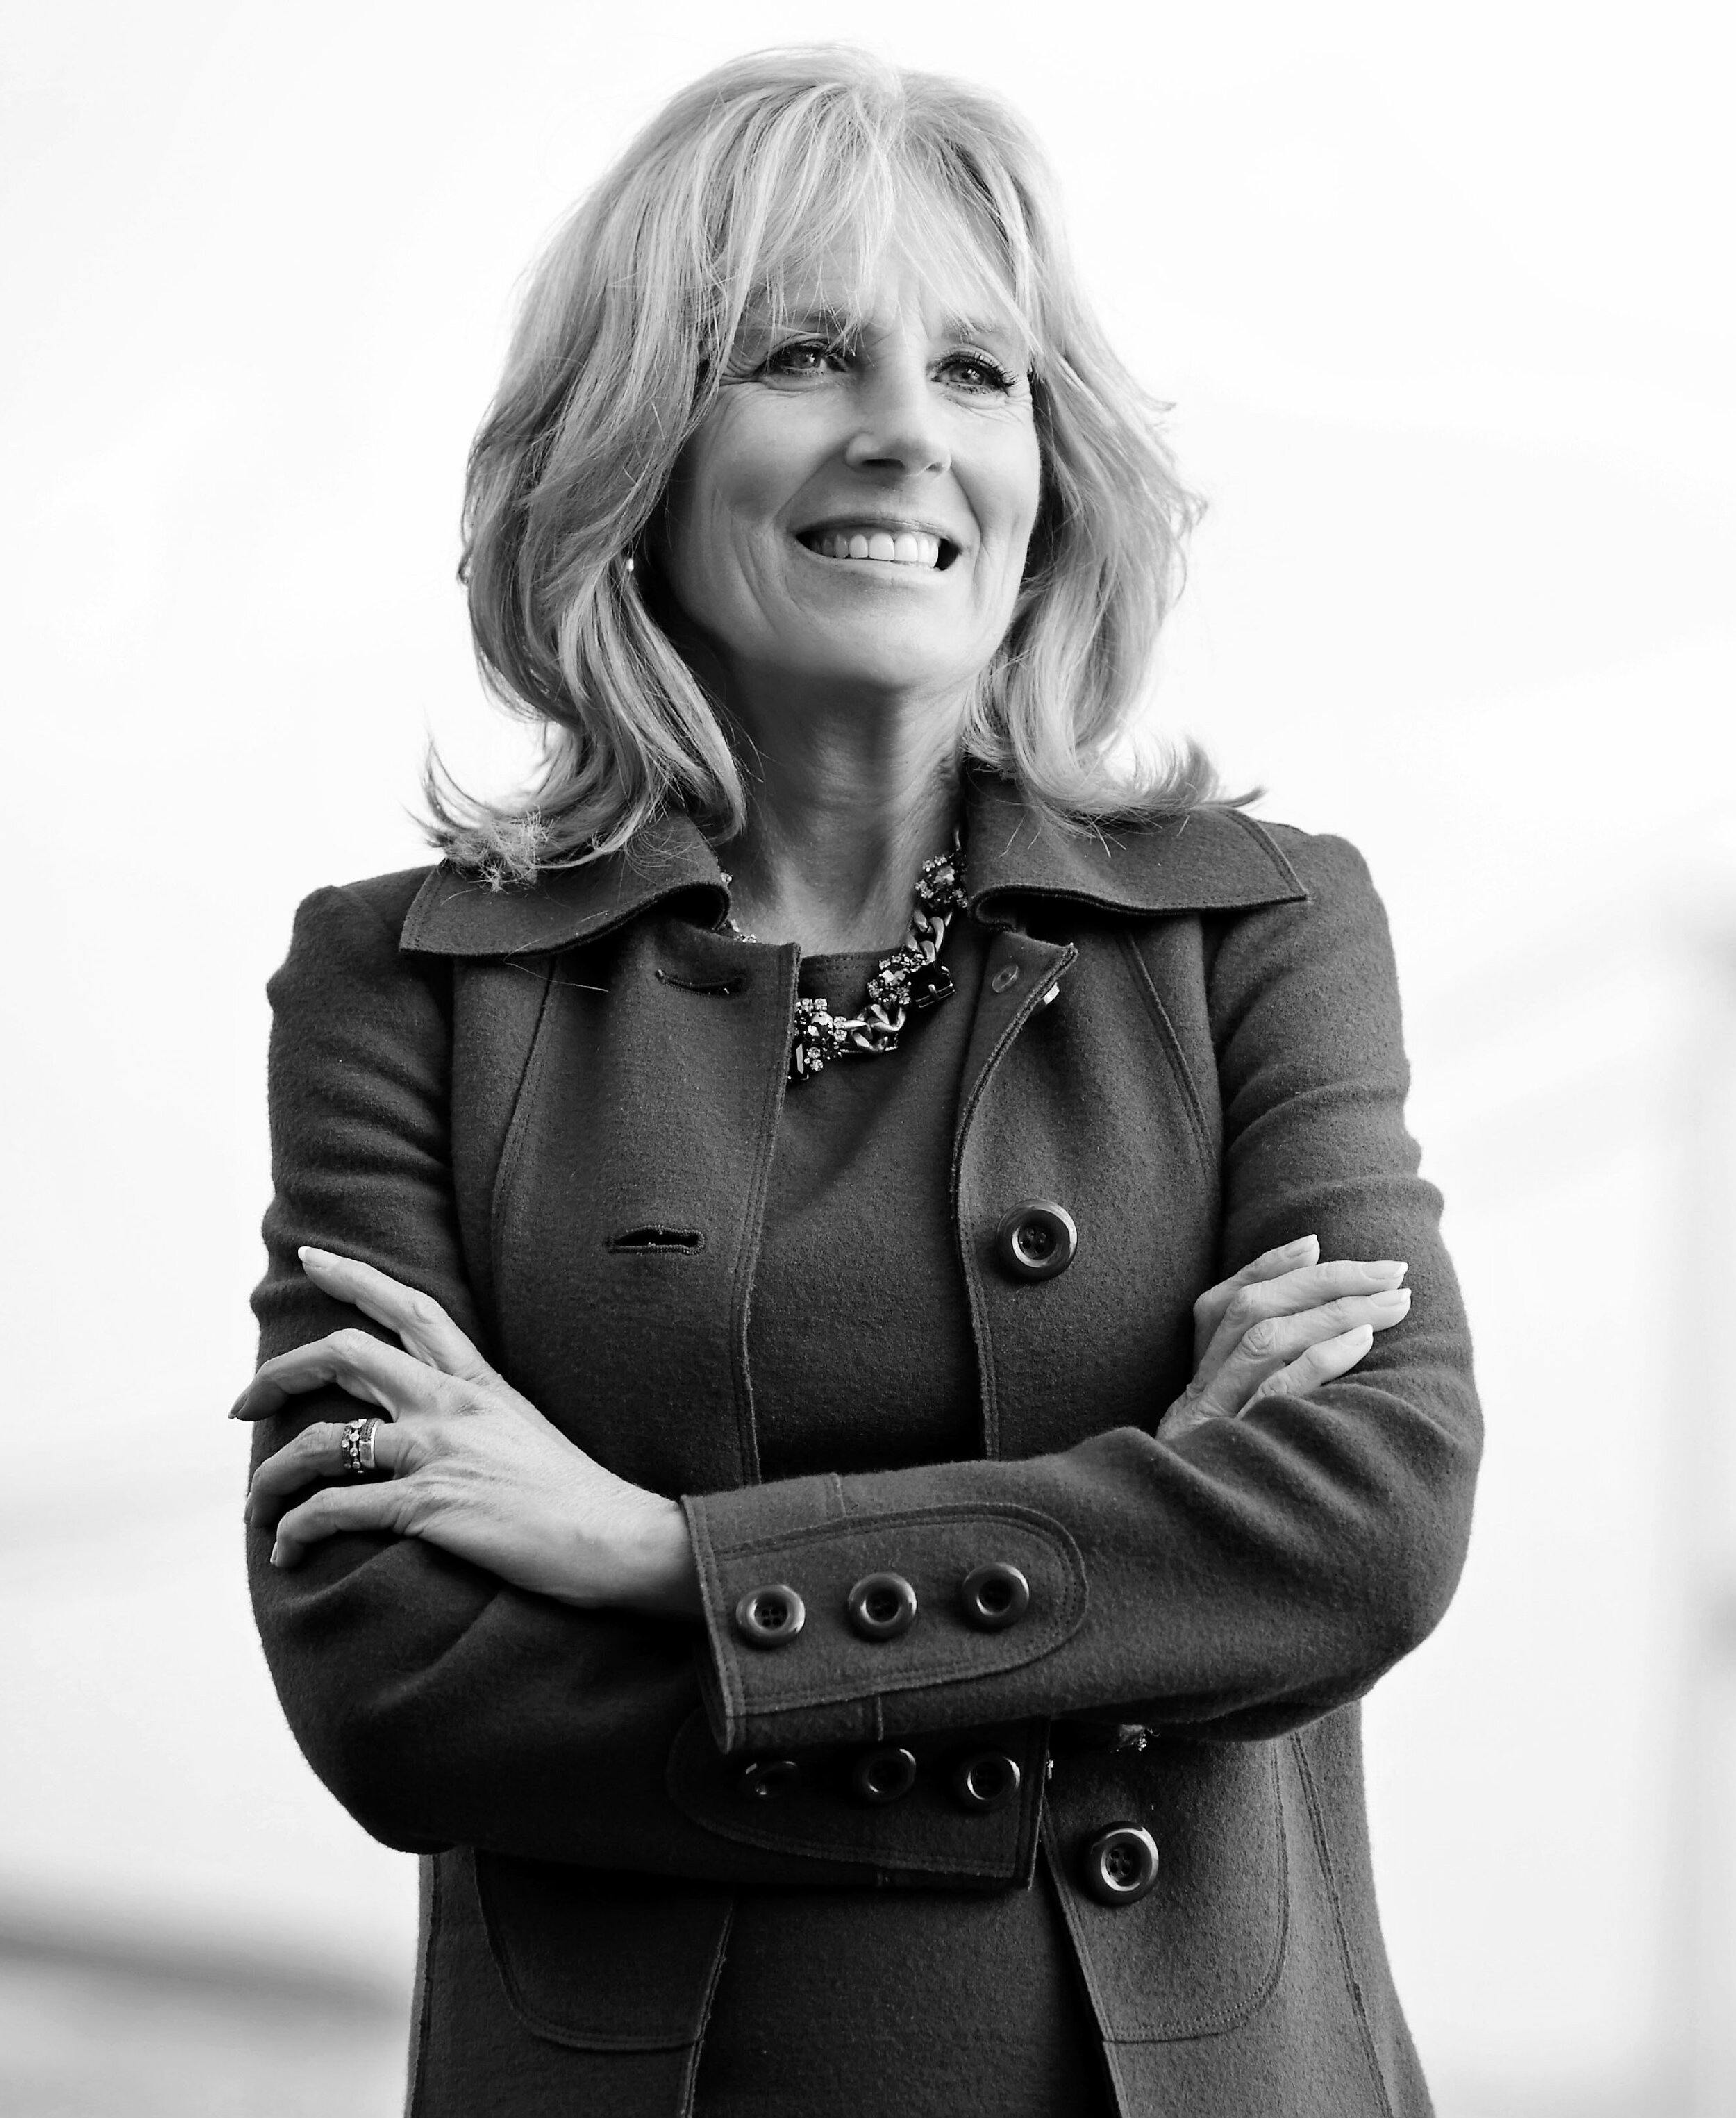 - Lifelong educator and Second Lady of the United States from 2009-2017, Dr. Jill Biden will join us for the special evening.